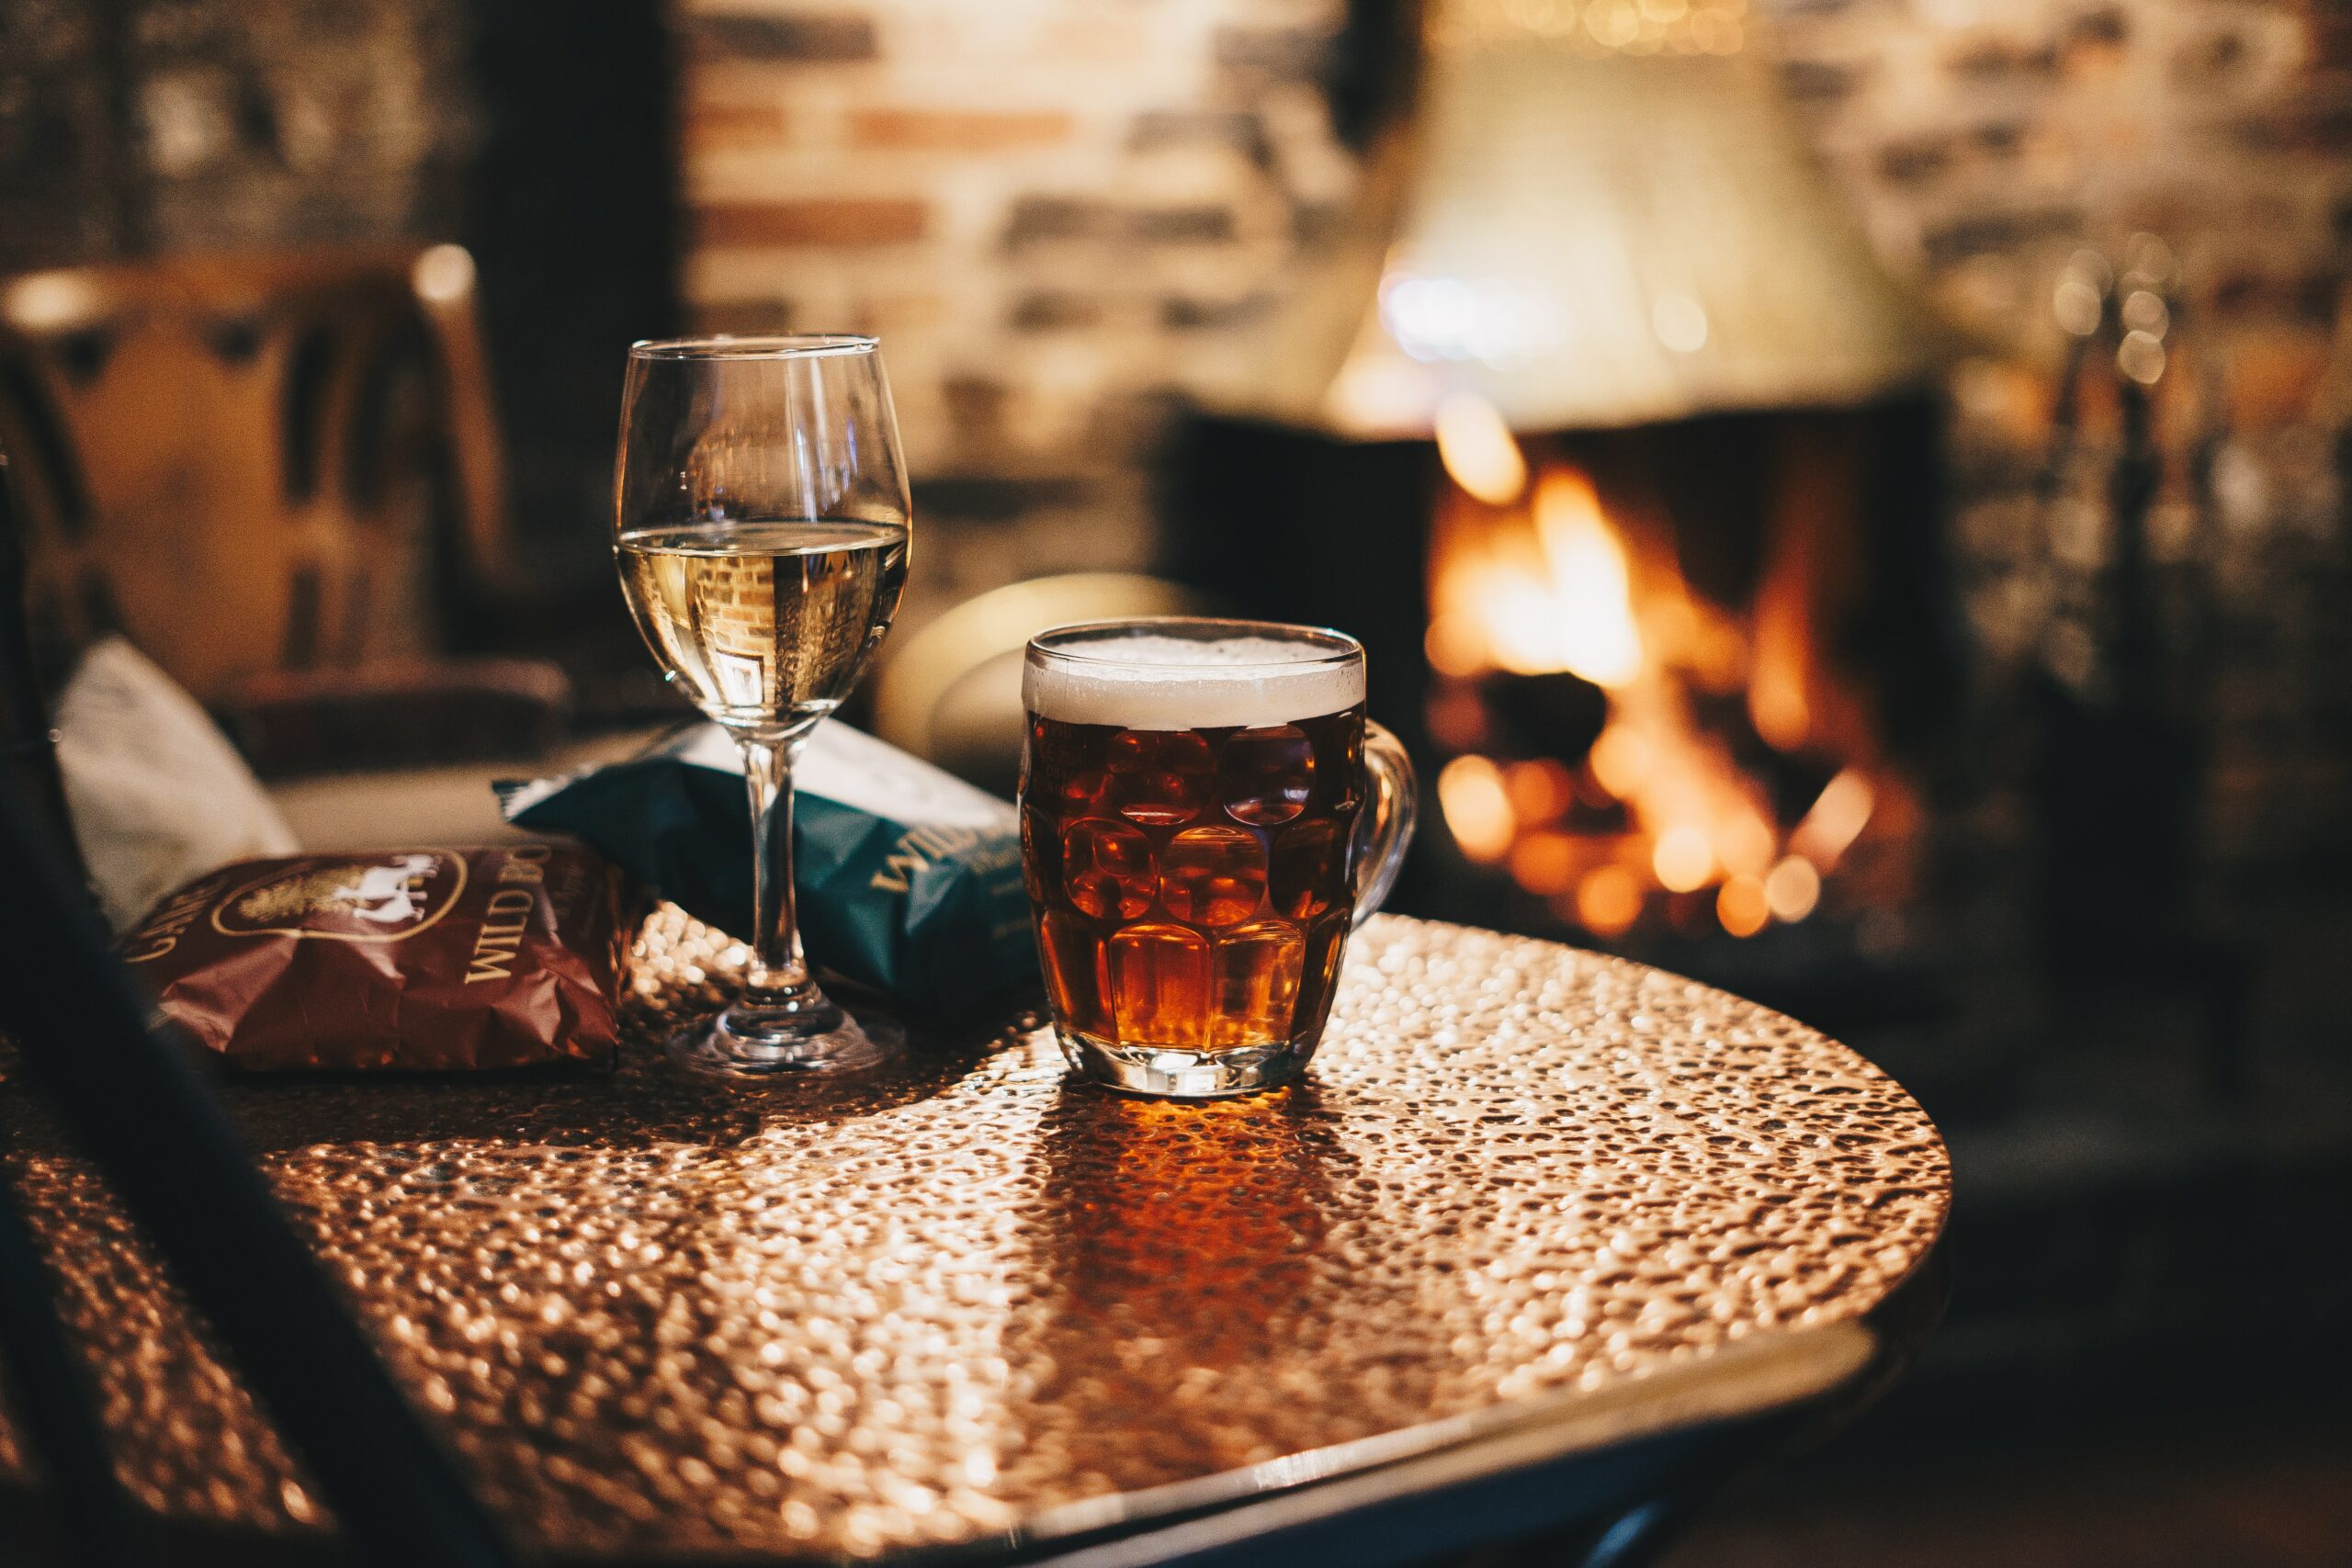 beer, wine and crisps on a pub table by an open fire